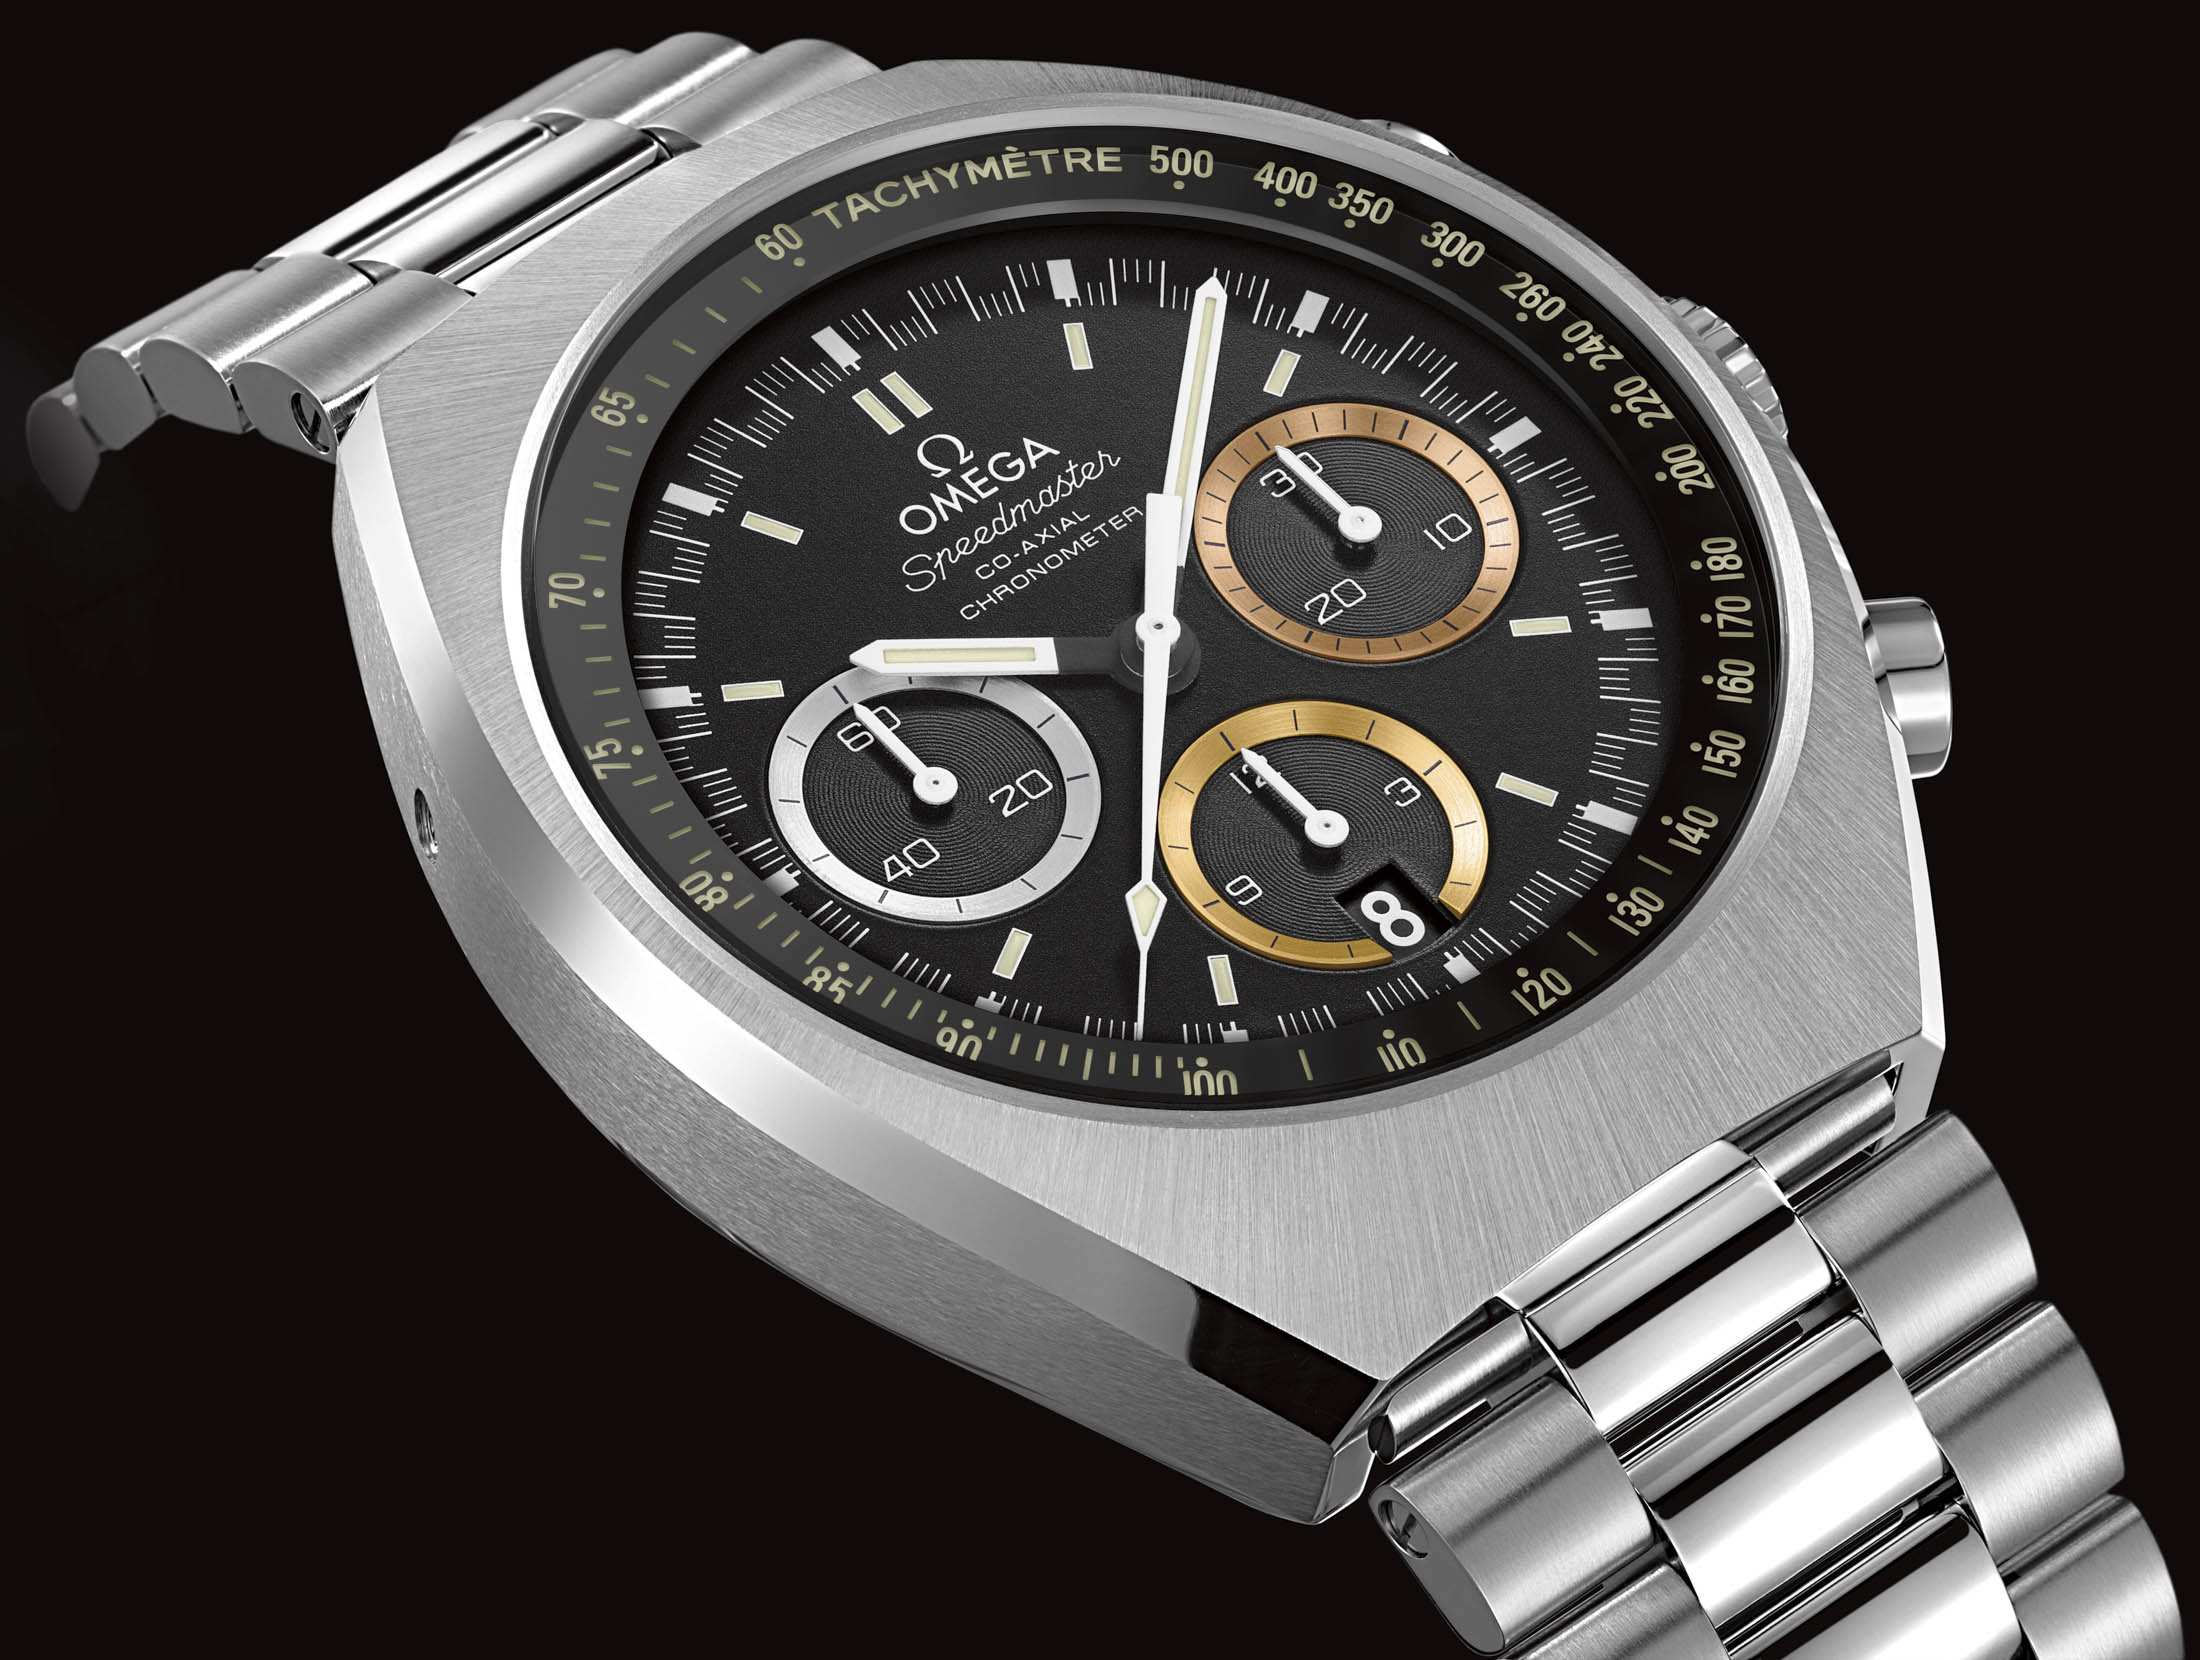 watch axial chronograph speedmaster coaxial on moonwatch omega titanium watches co blue hands